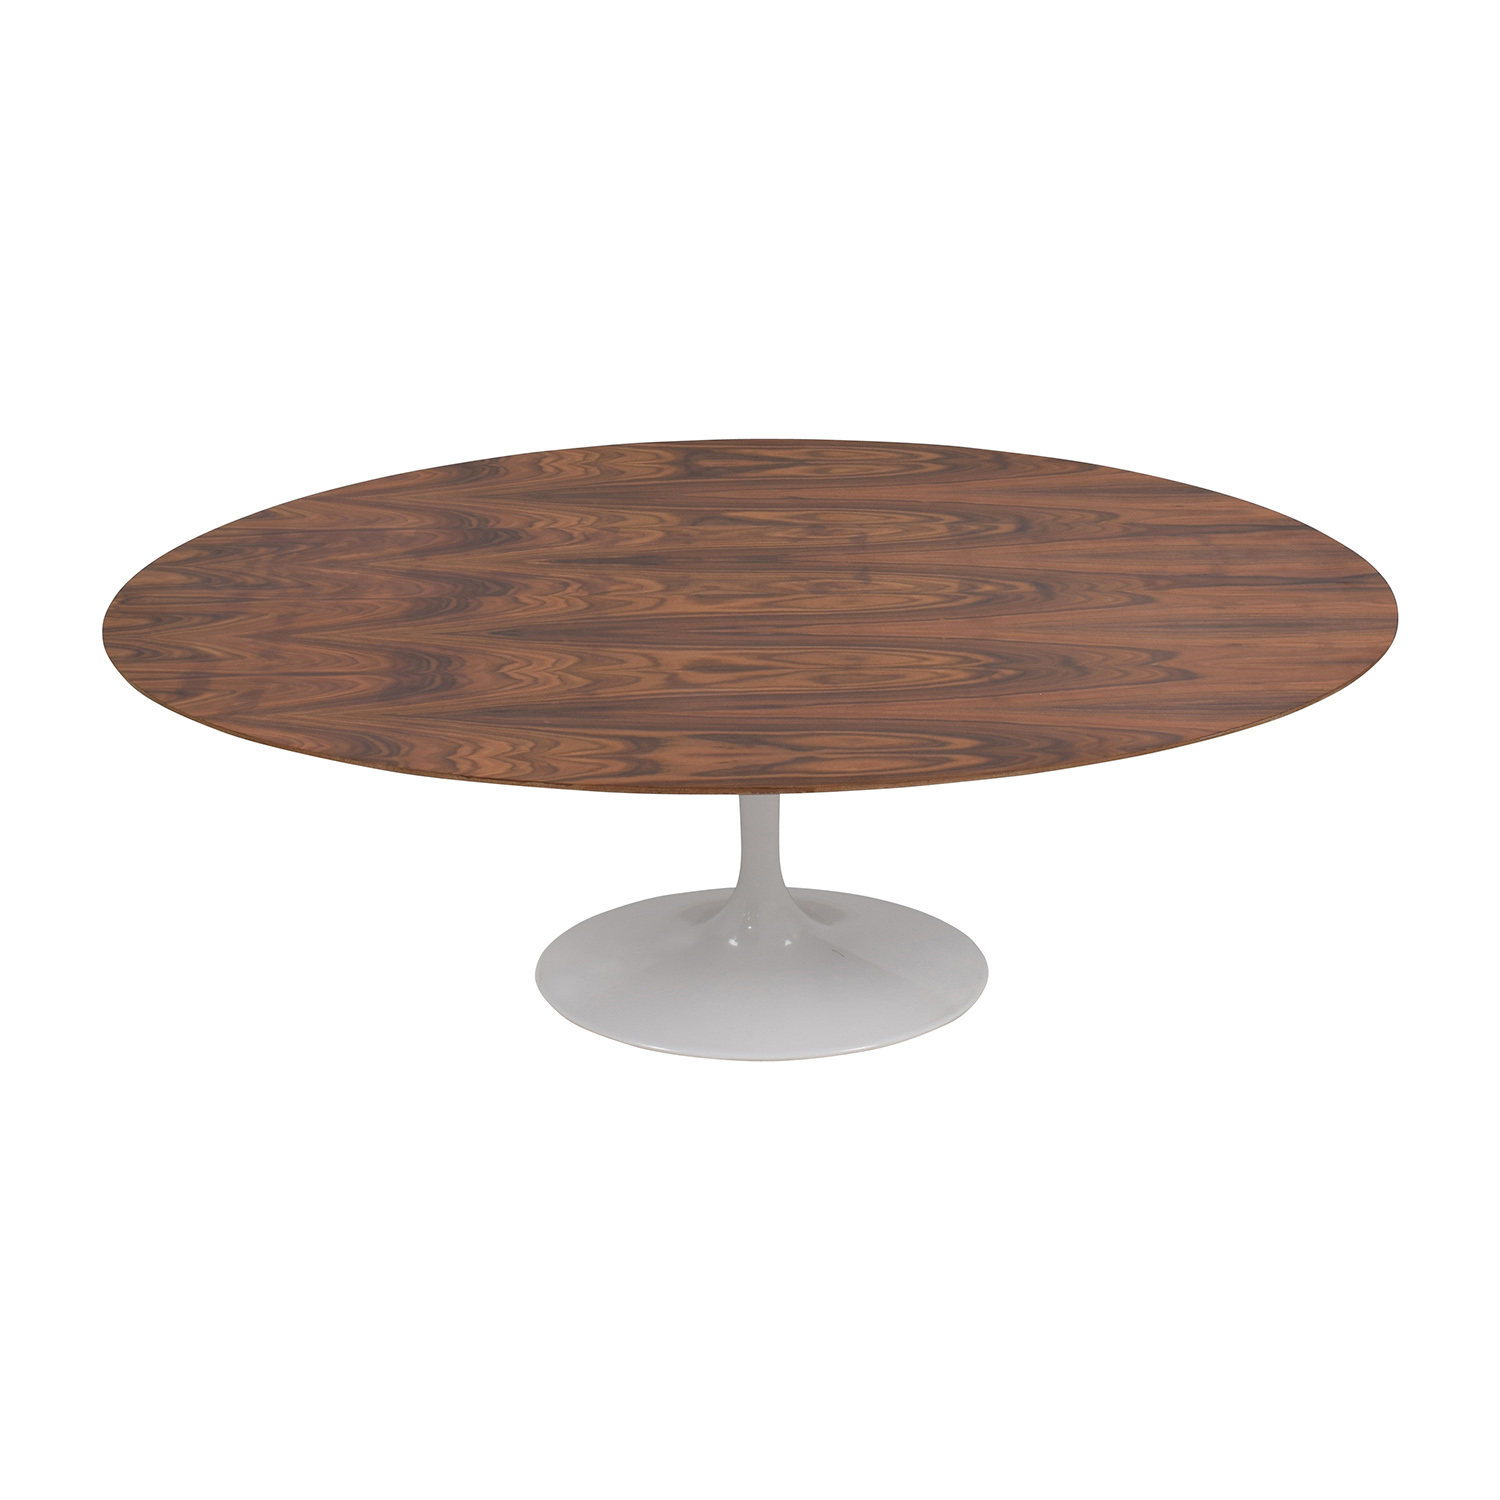 shop InMod InMod Saarinen Oval Pedestal Dining table online